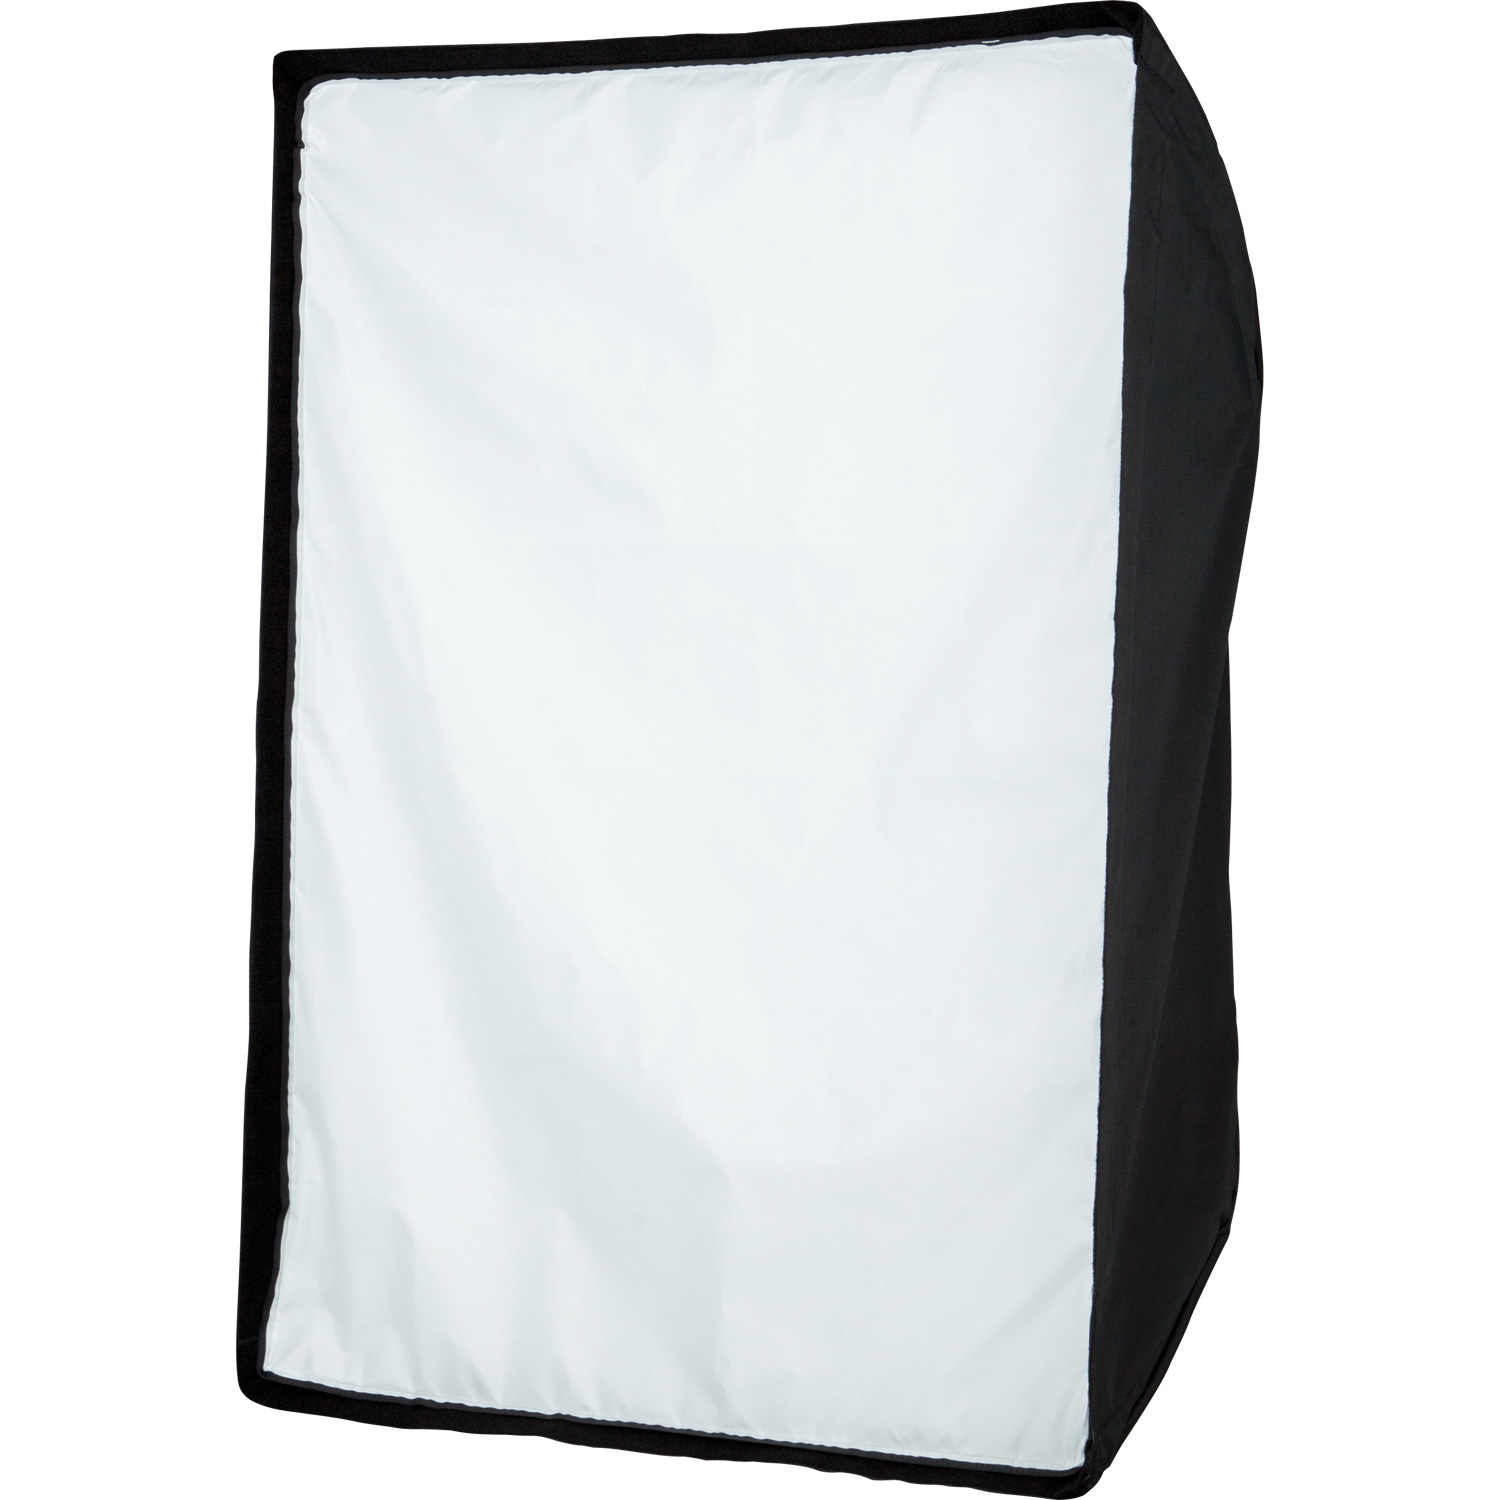 Pro Signature 36-in. x 48-in. Softbox with White Interior